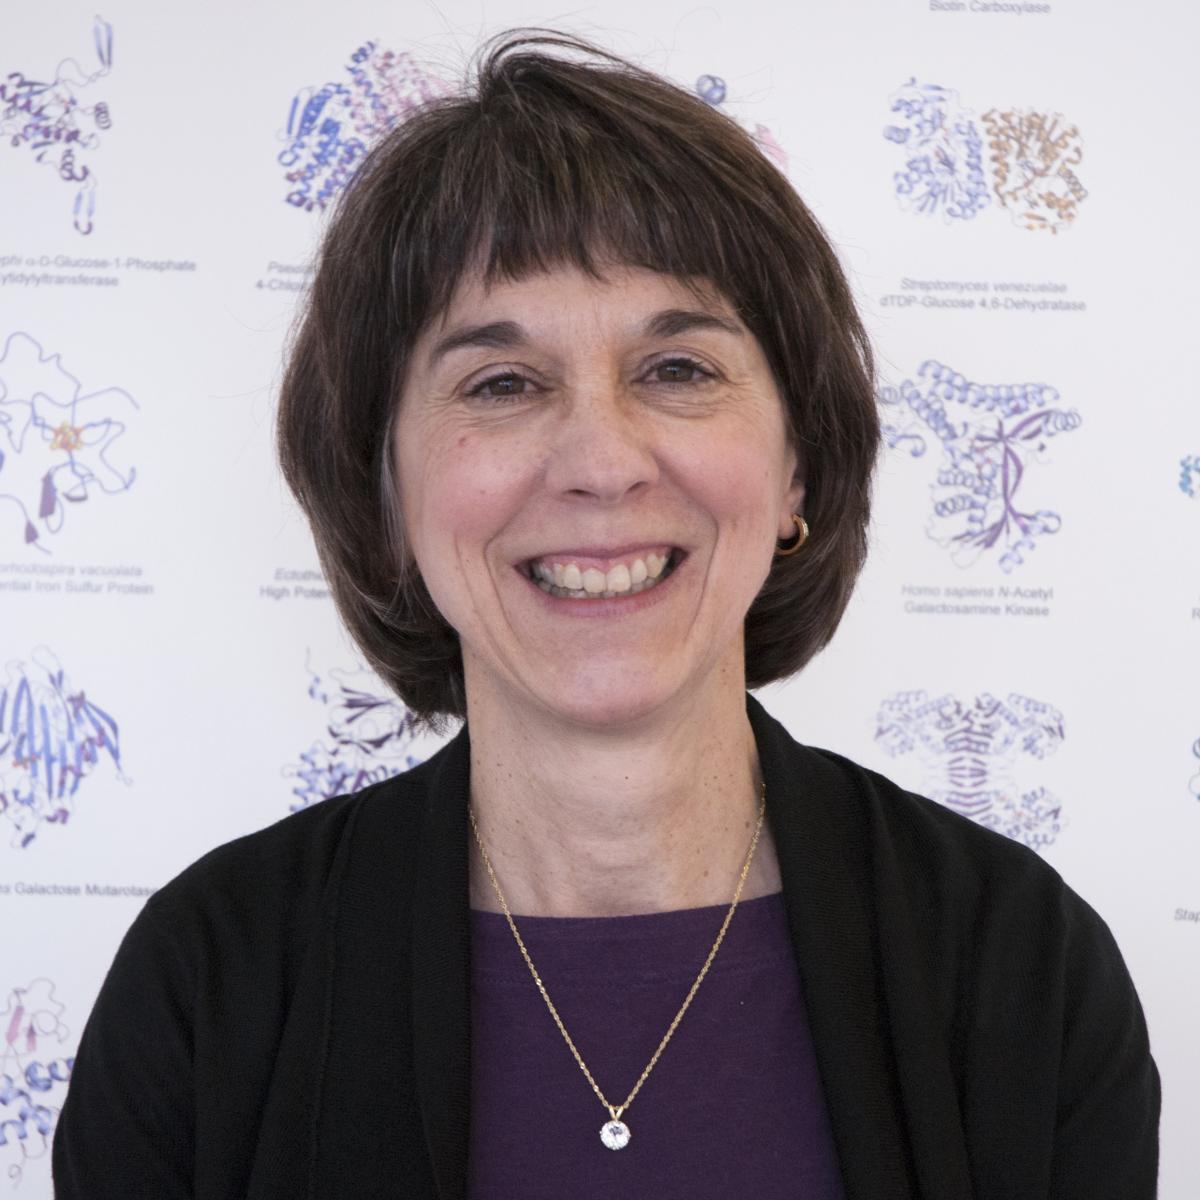 Photo of biochemistry professor Hazel Holden